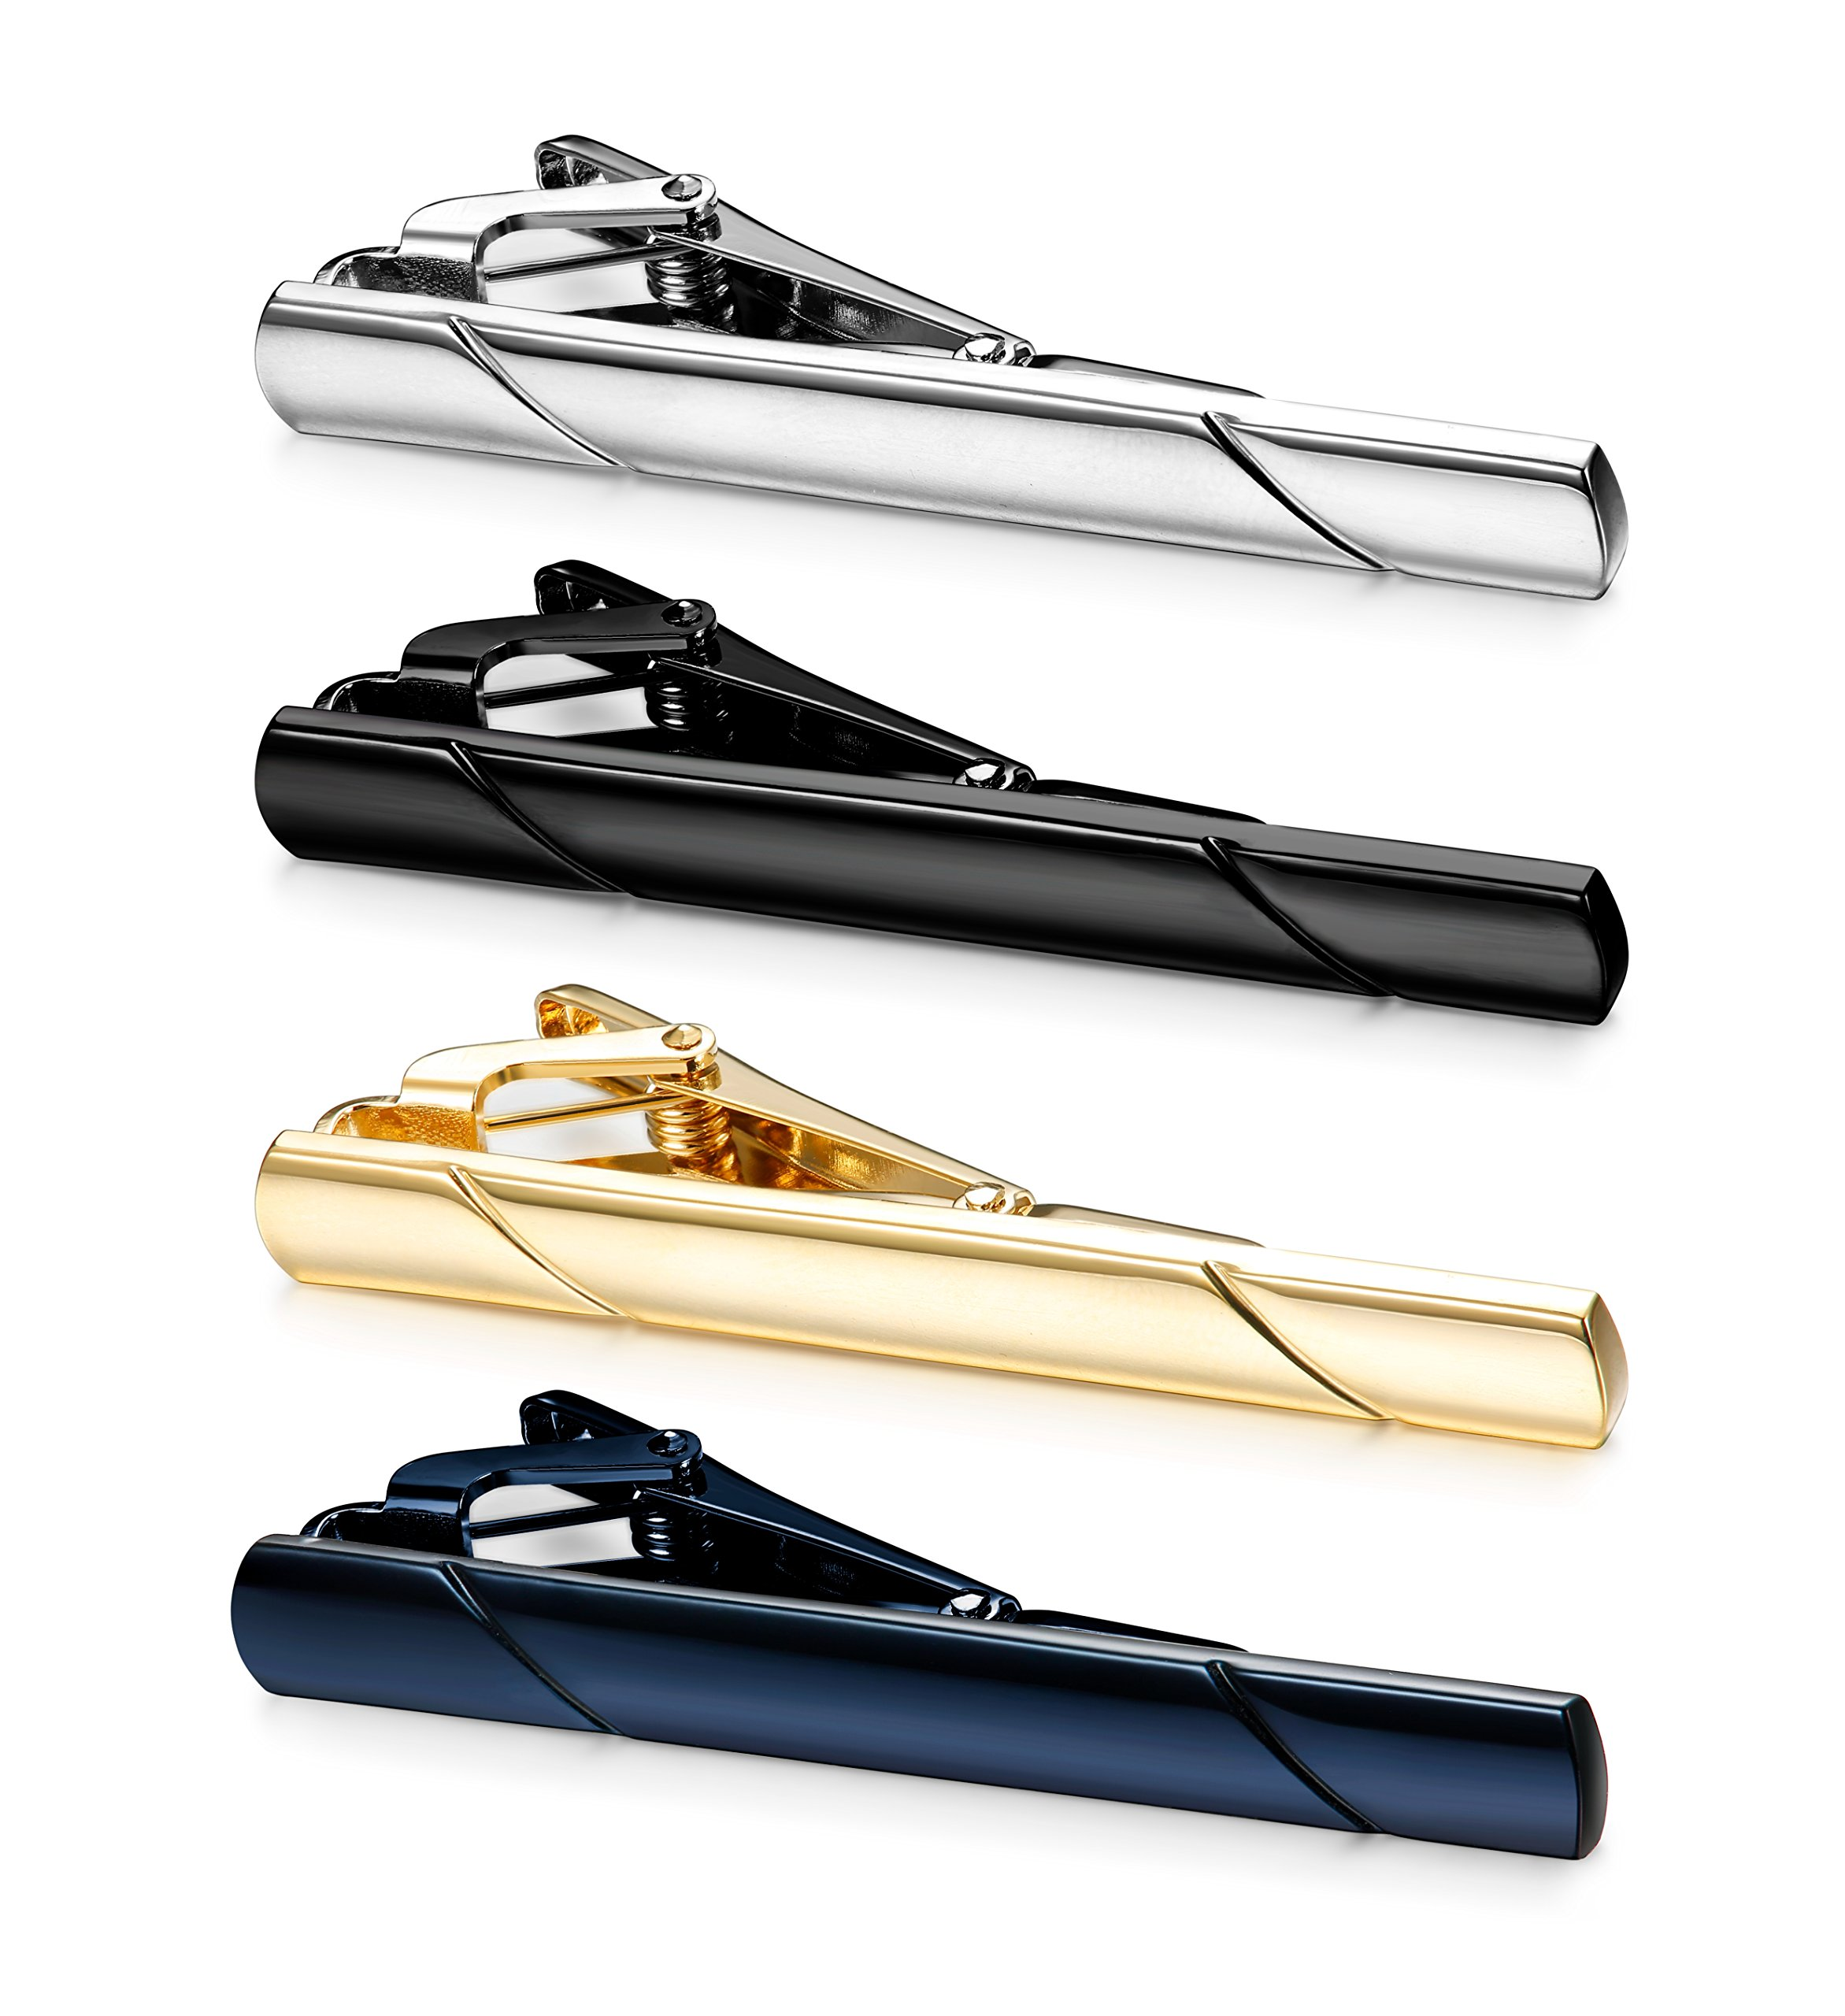 Jstyle 4 Pcs Tie Clips for Men Tie Bar Clip Set for Regular Ties Necktie Wedding Business Clips by Jstyle (Image #2)